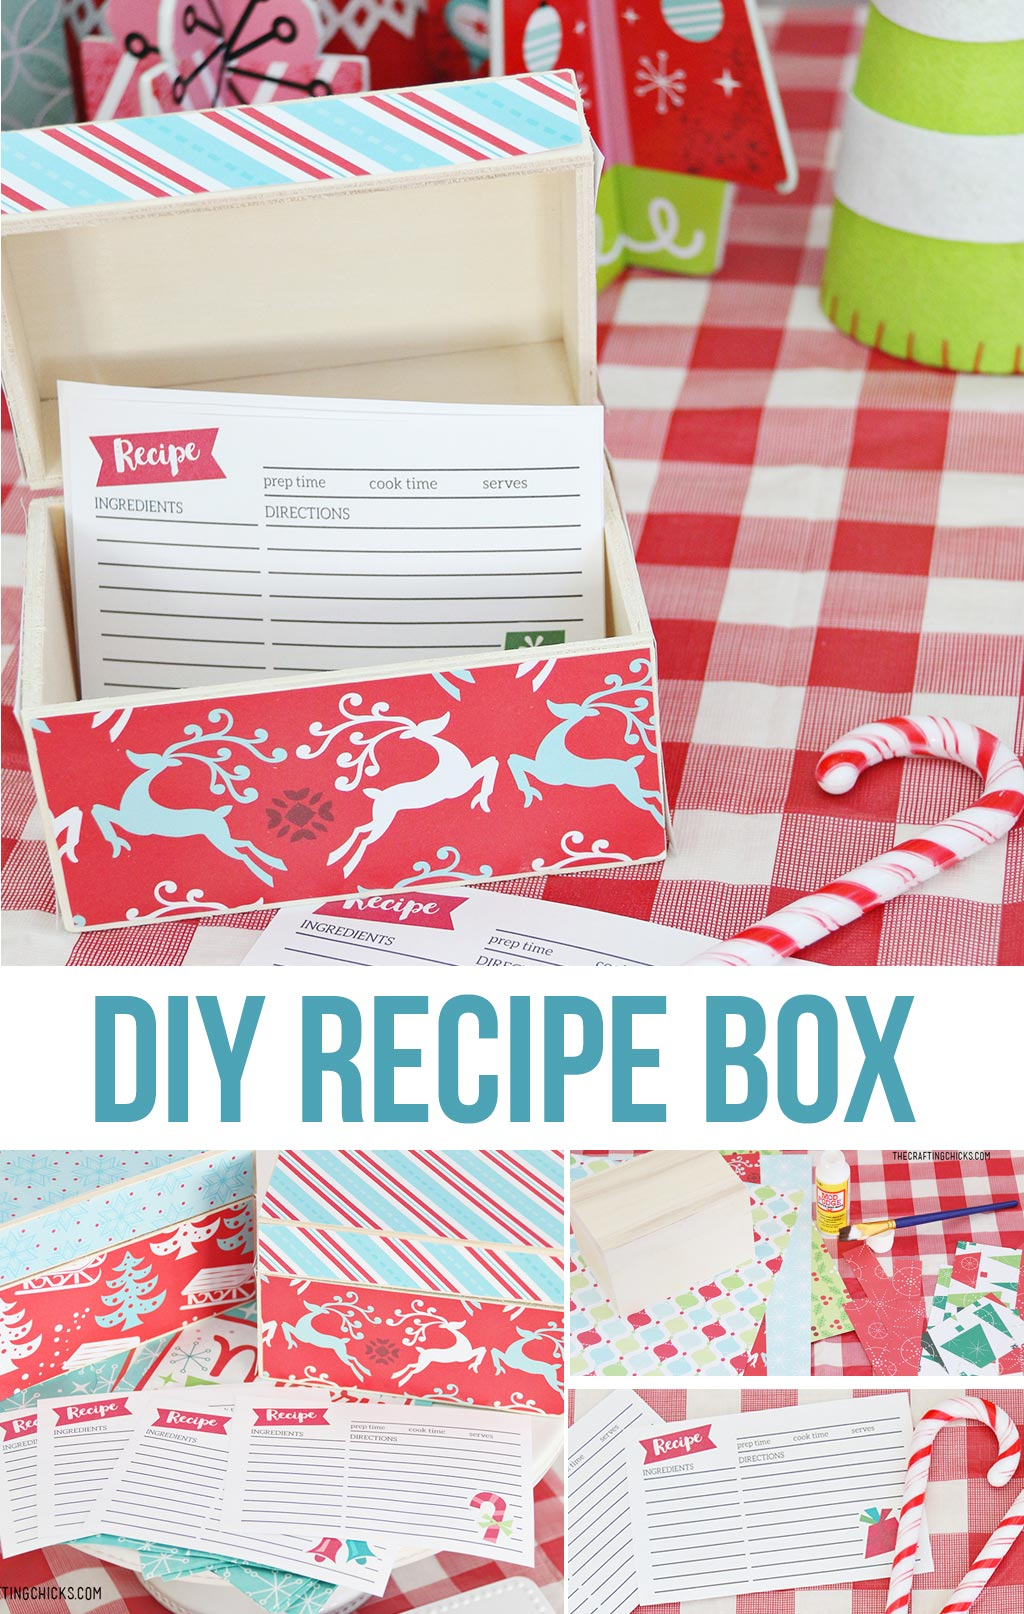 DIY Recipe Box and Printable Recipe Cards